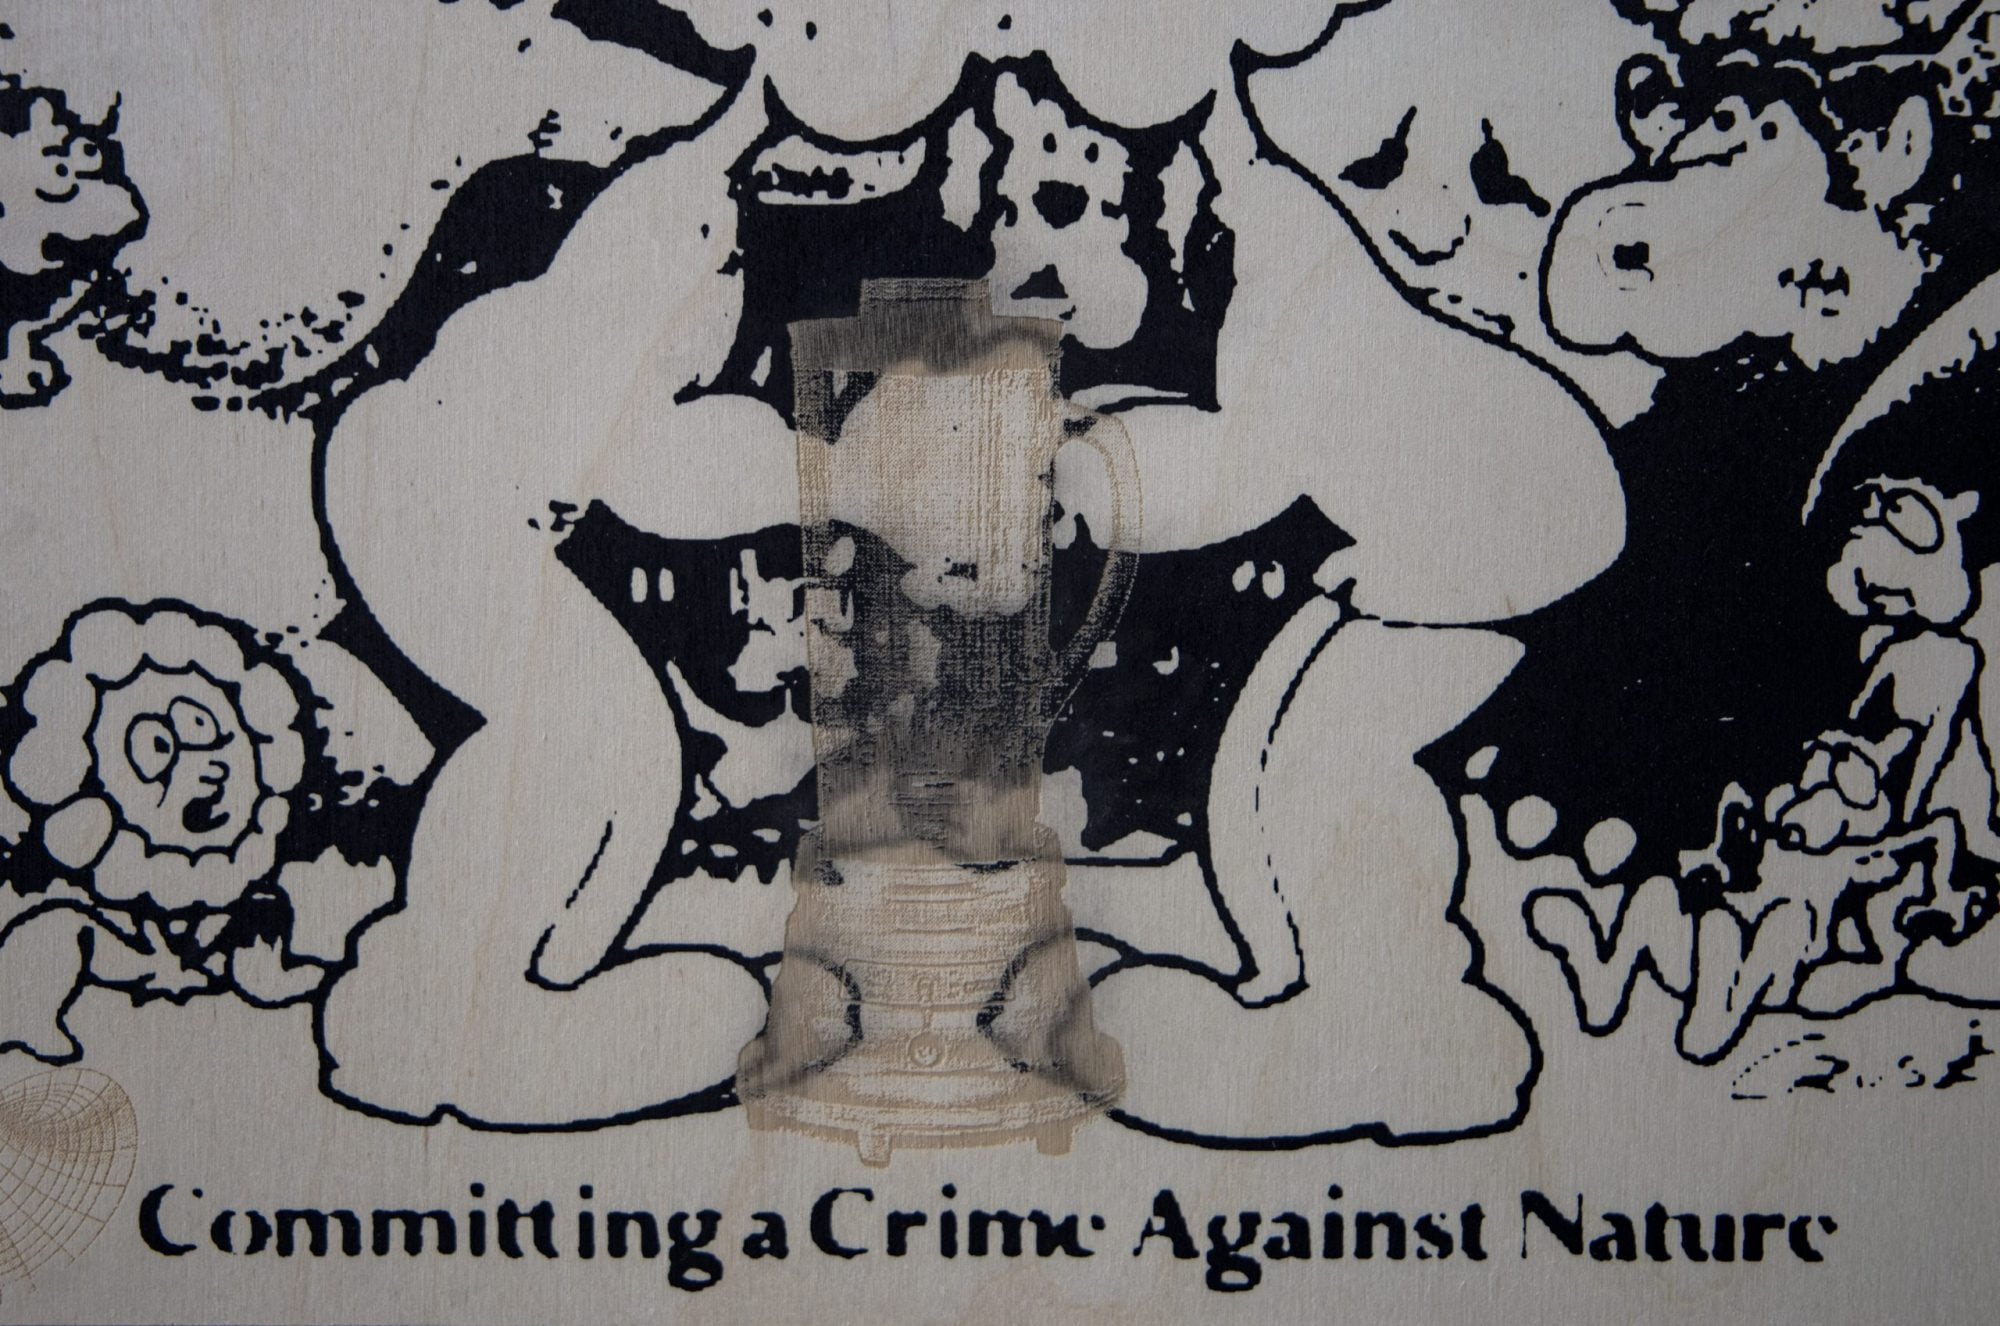 """A faint and slightly see-through outline of a blender sits central to the image. In the background are crowded black printed images of indistinct cartoon characters. Two identical figures face each other in the centre, joined partially in a kiss, although the tops of their heads are cropped off. Along the bottom, black stencil-like text reads: """"Committing a Crime Against Nature"""""""